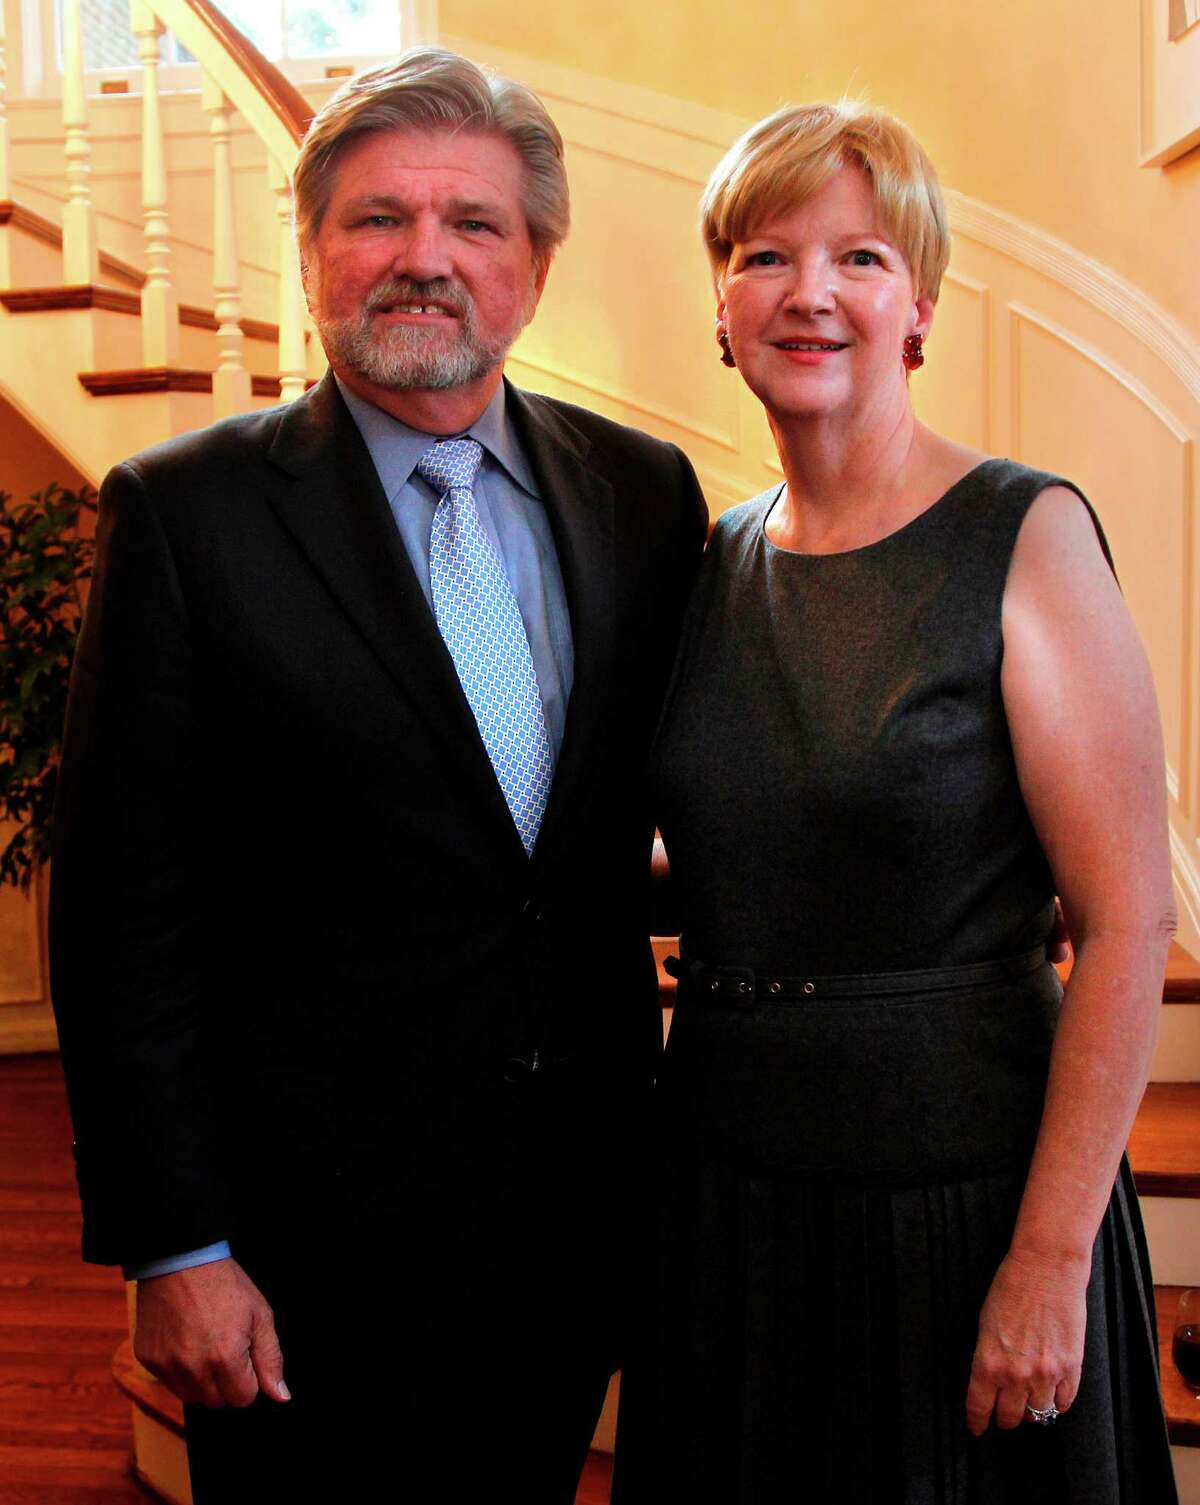 Robert Lynch and Leslie Blanton , President and CEO of Americans for the Arts, with a cocktail party.